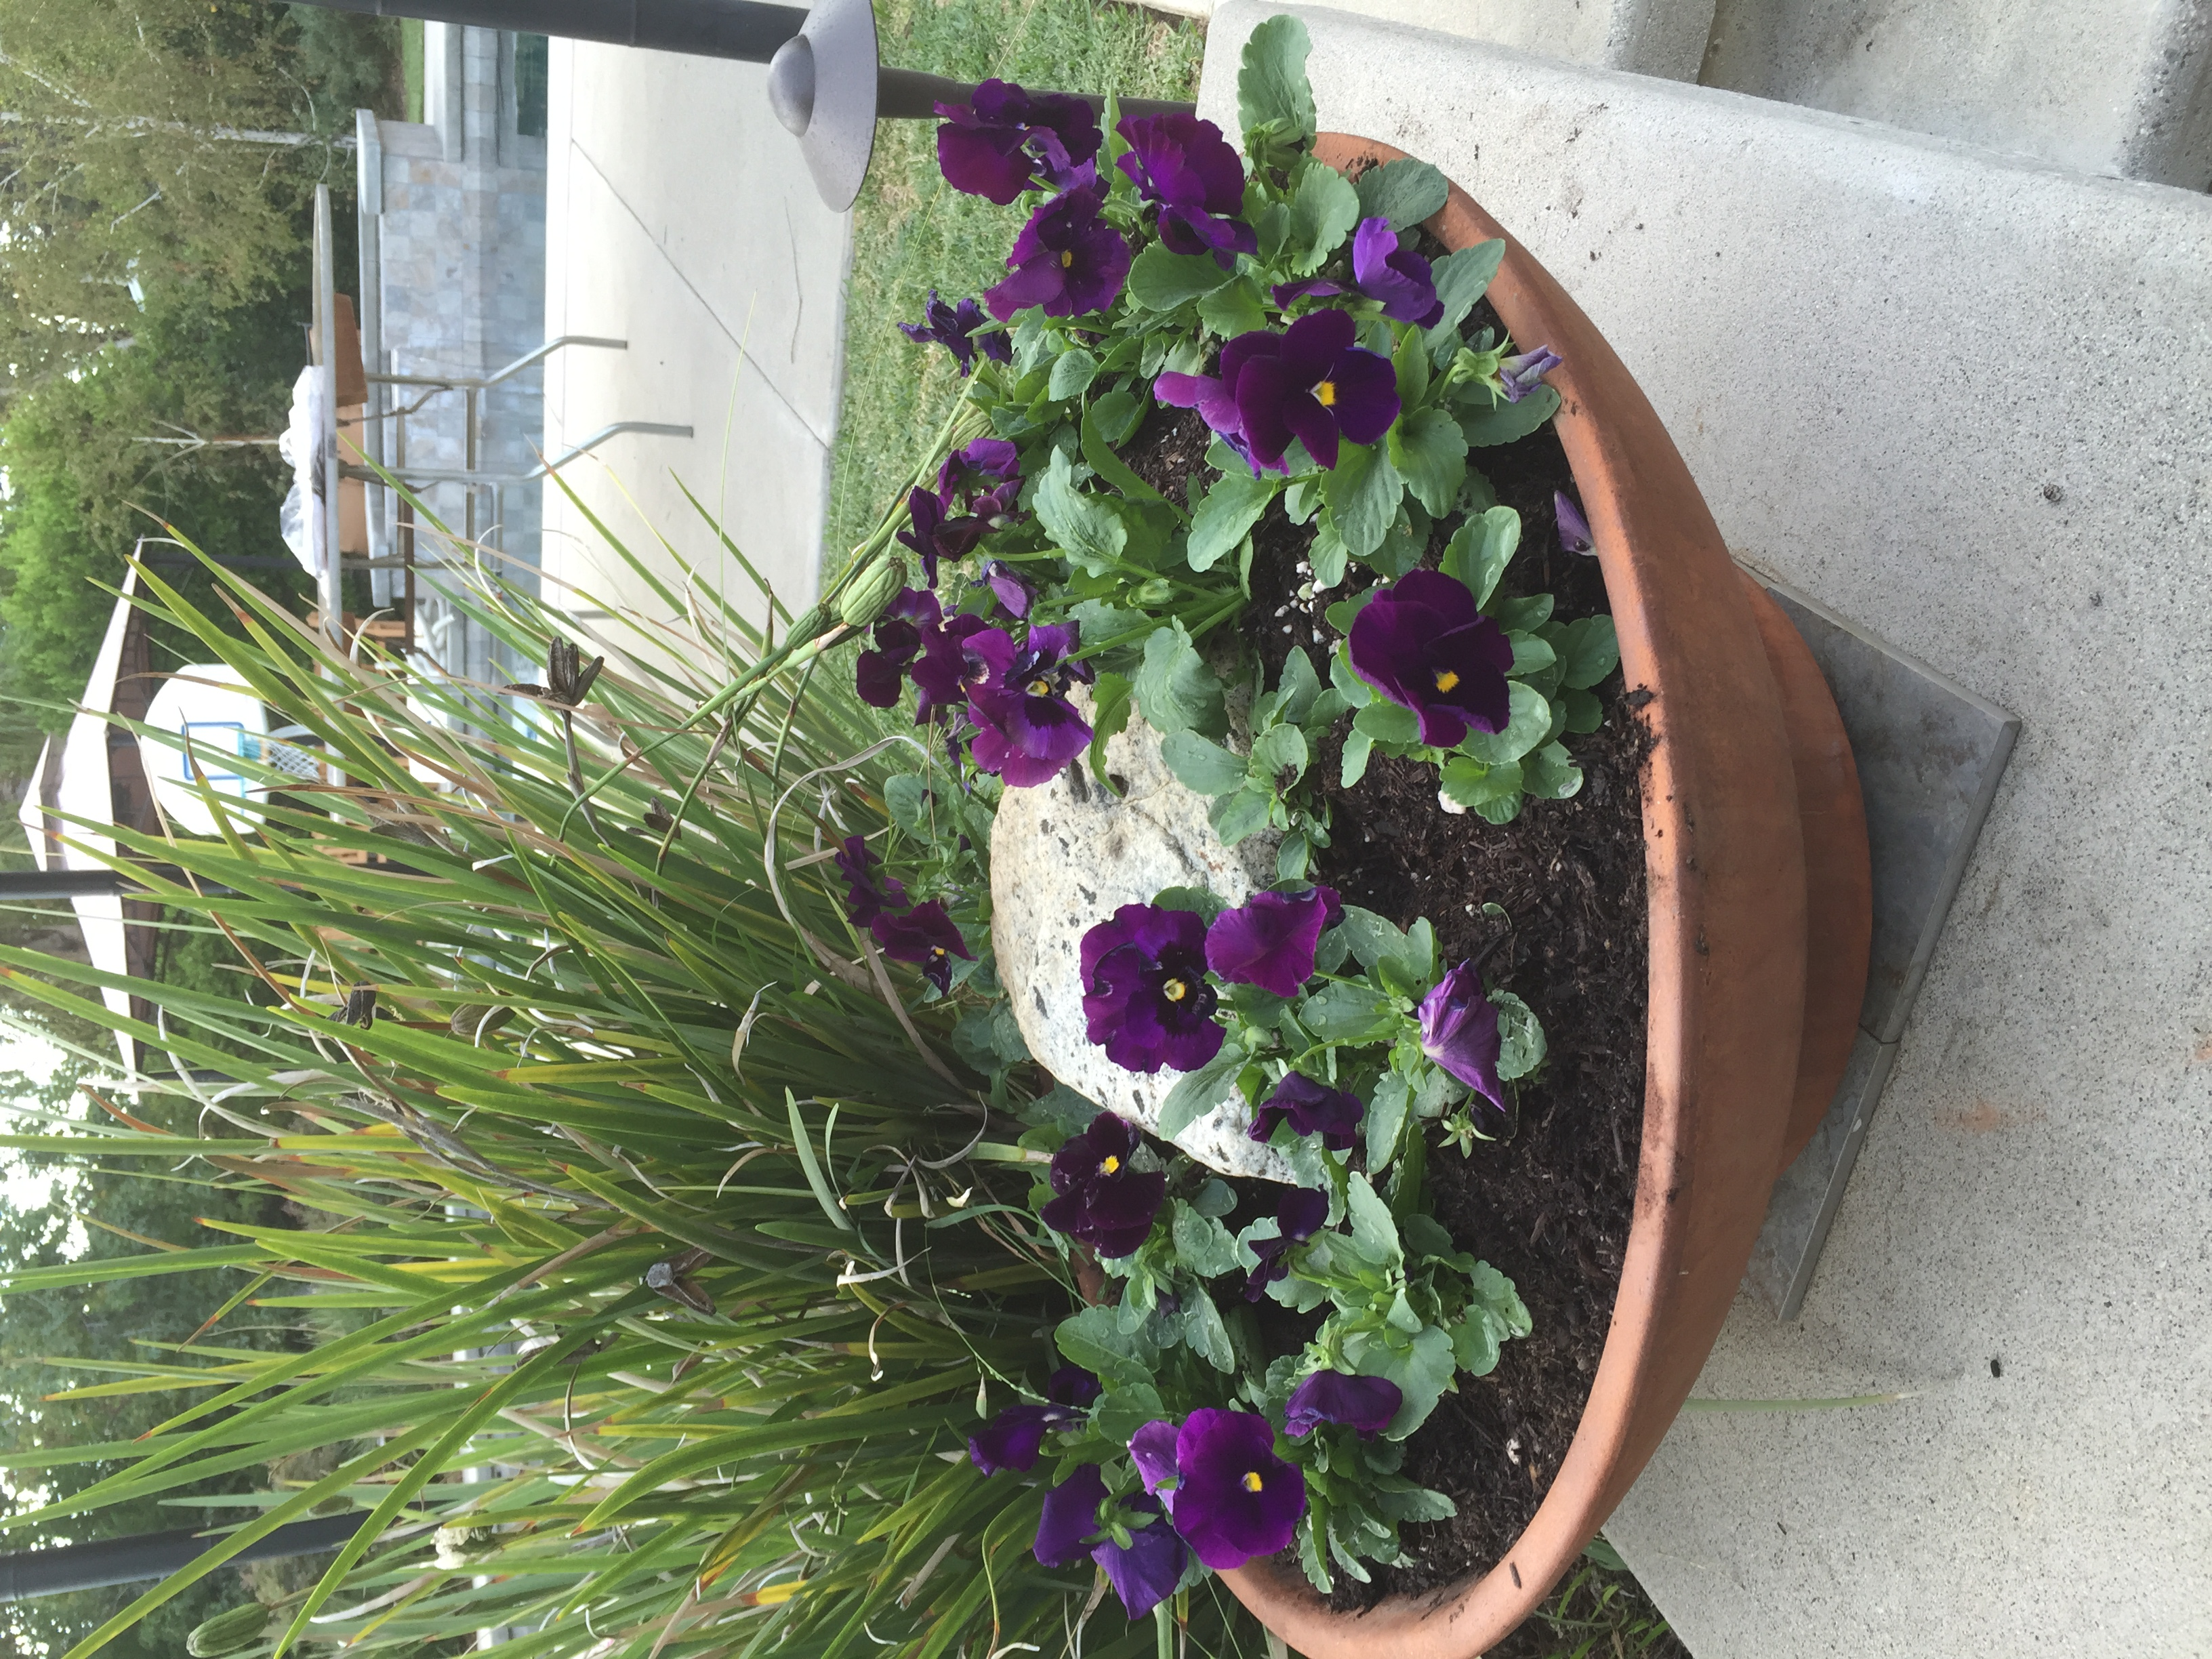 River rock with pansies